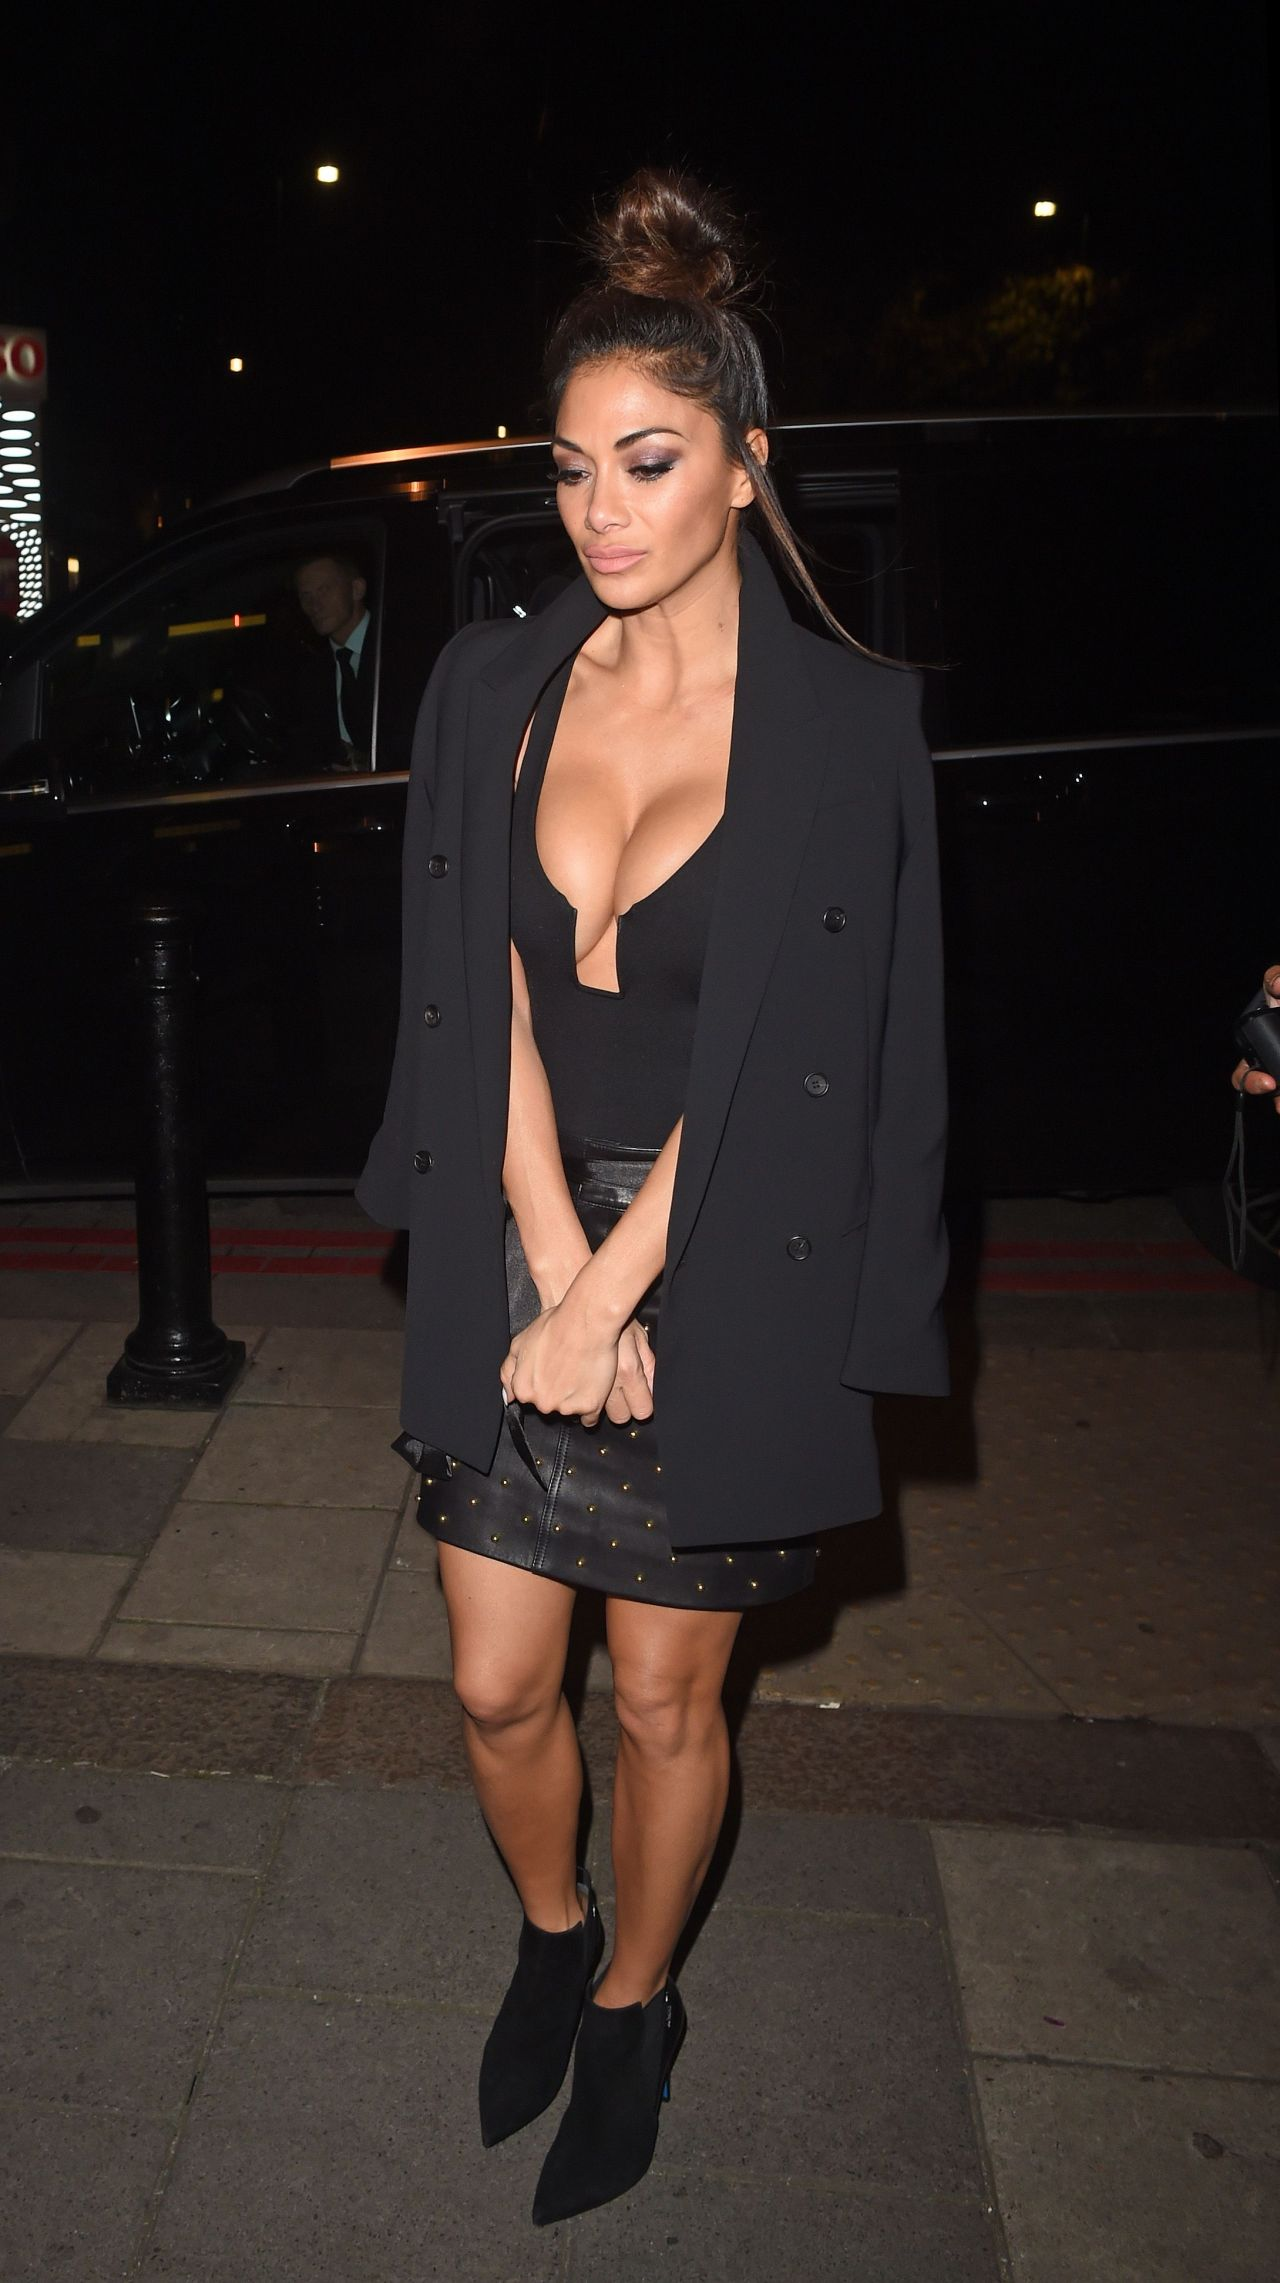 nicole-scherzinger-arriving-back-at-her-hotel-11-27-2016-14.jpg